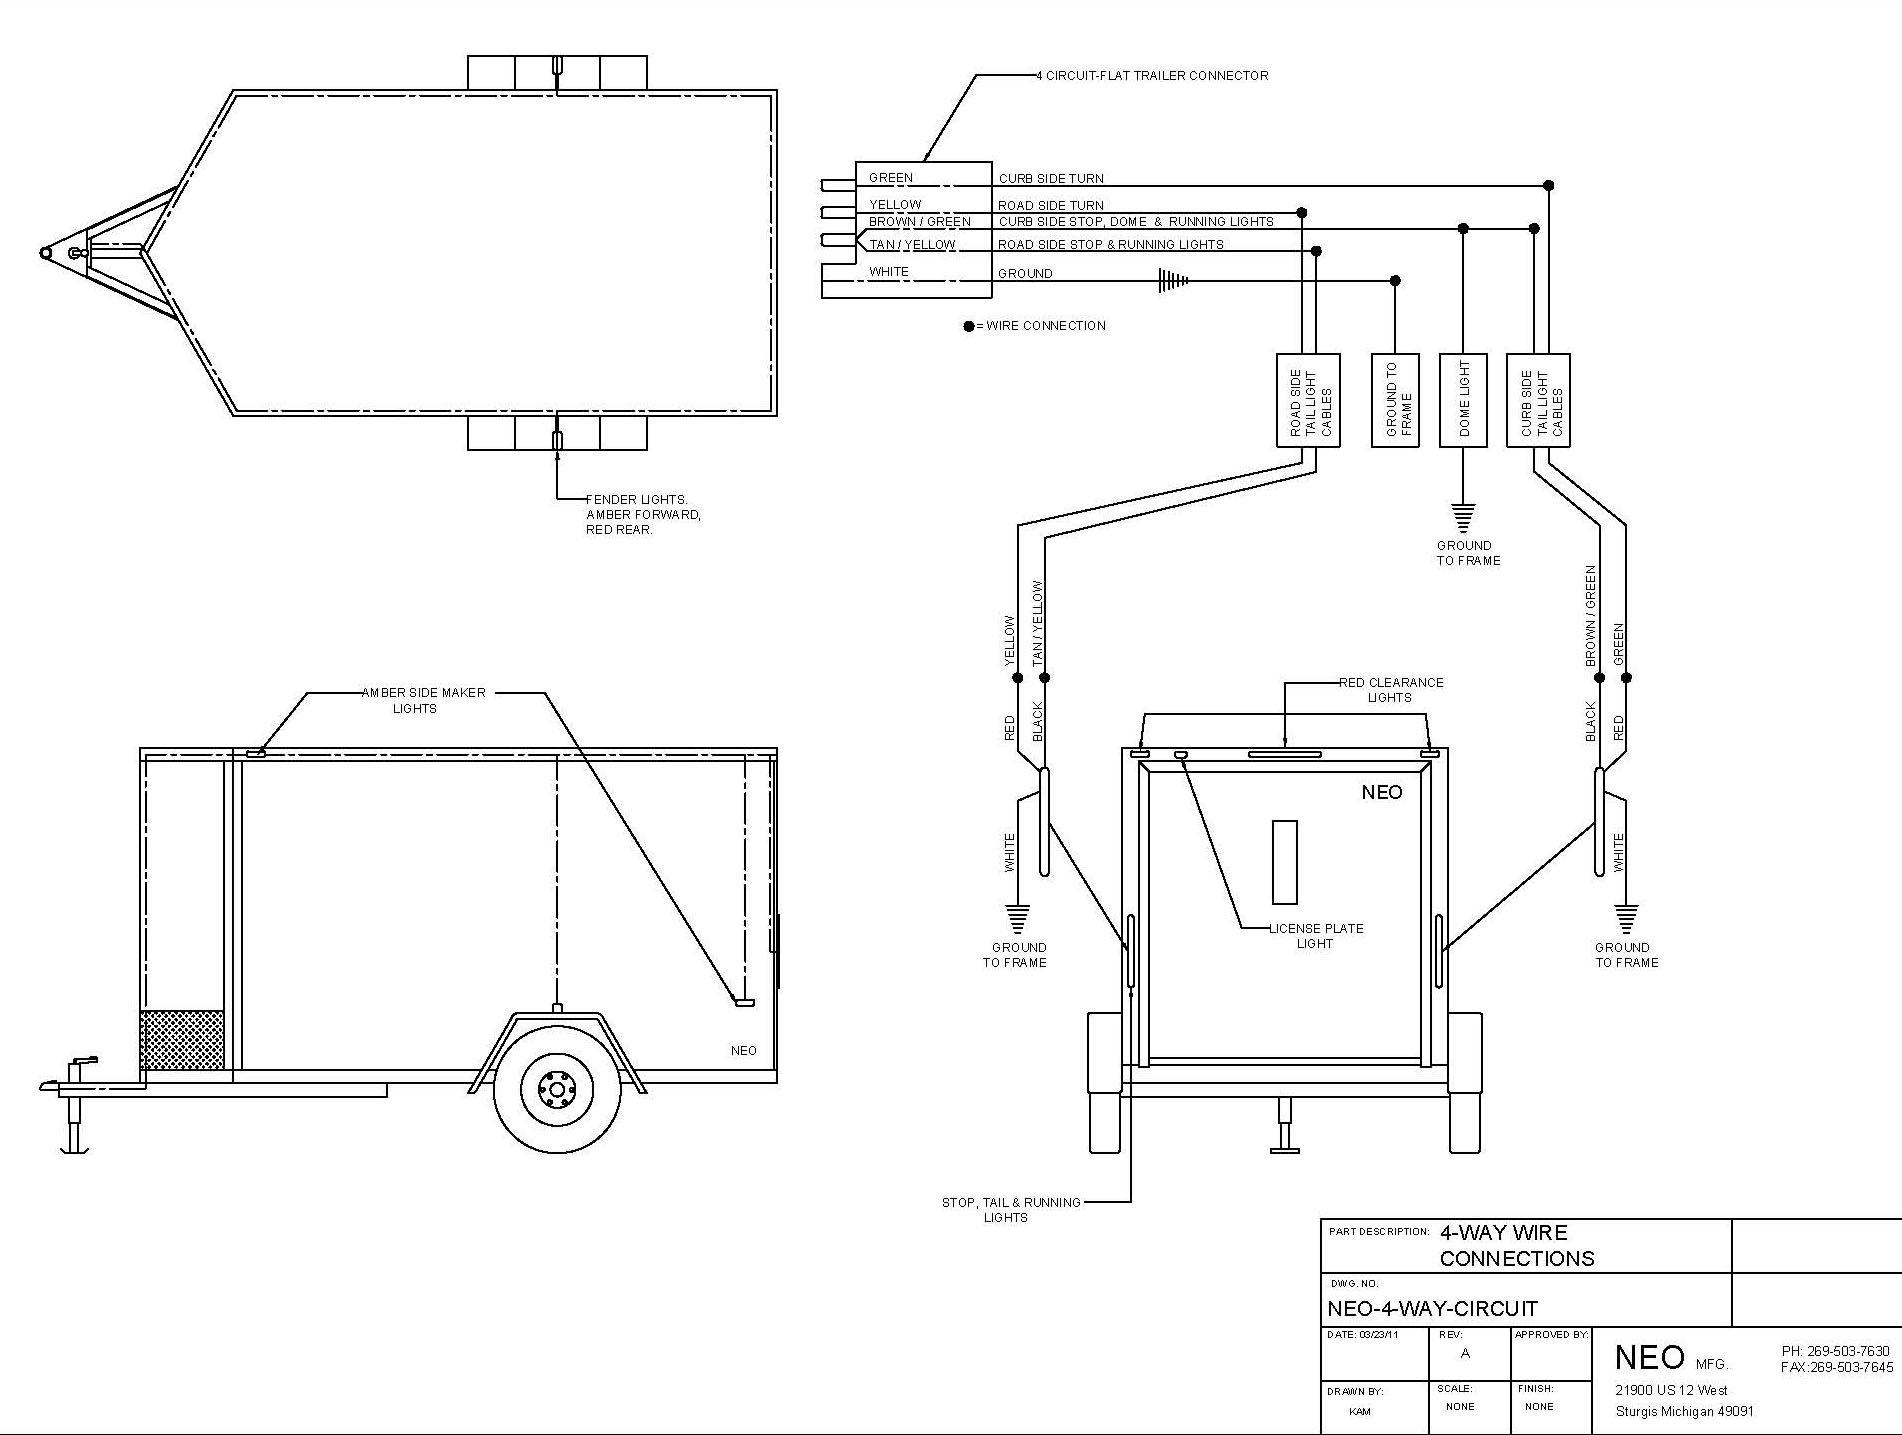 Wiring diagram for a utility trailer the wiring diagram wiring diagram